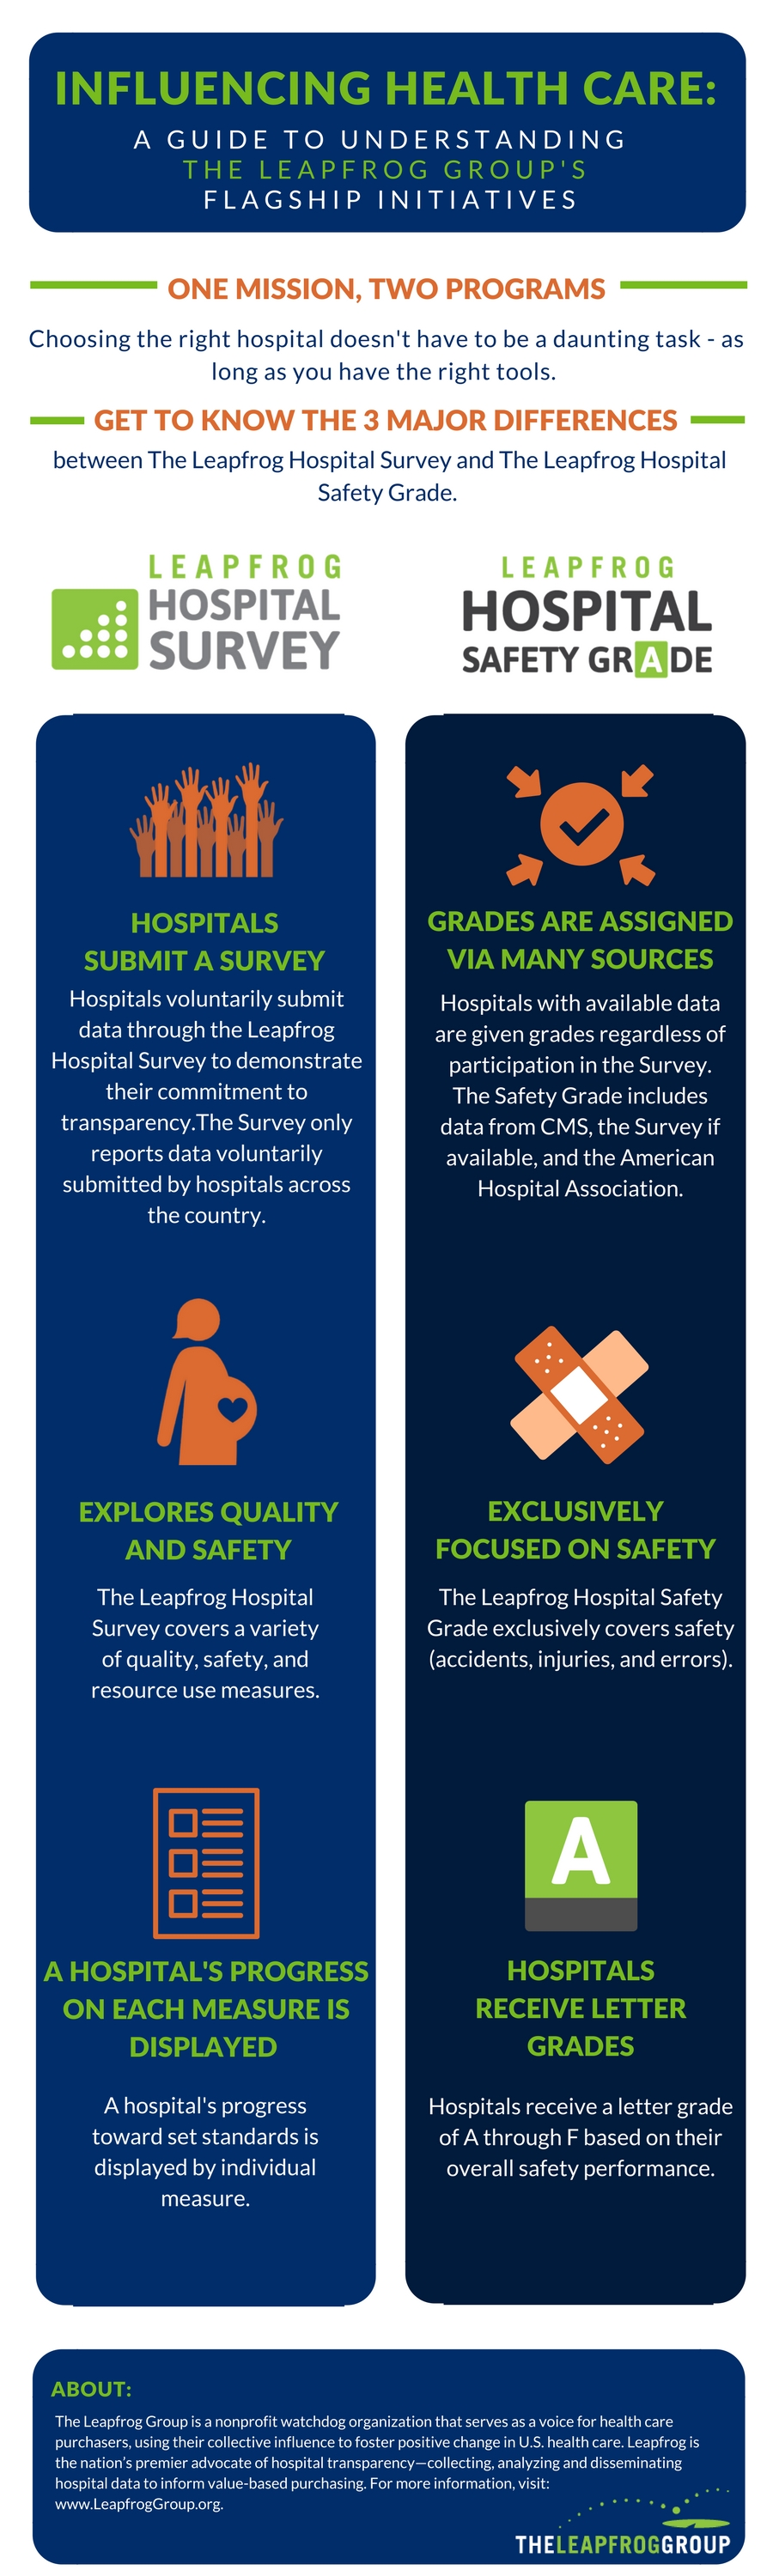 Hospital Safety Grade vs Hospital Survey Comparison Graphic Link to PDF